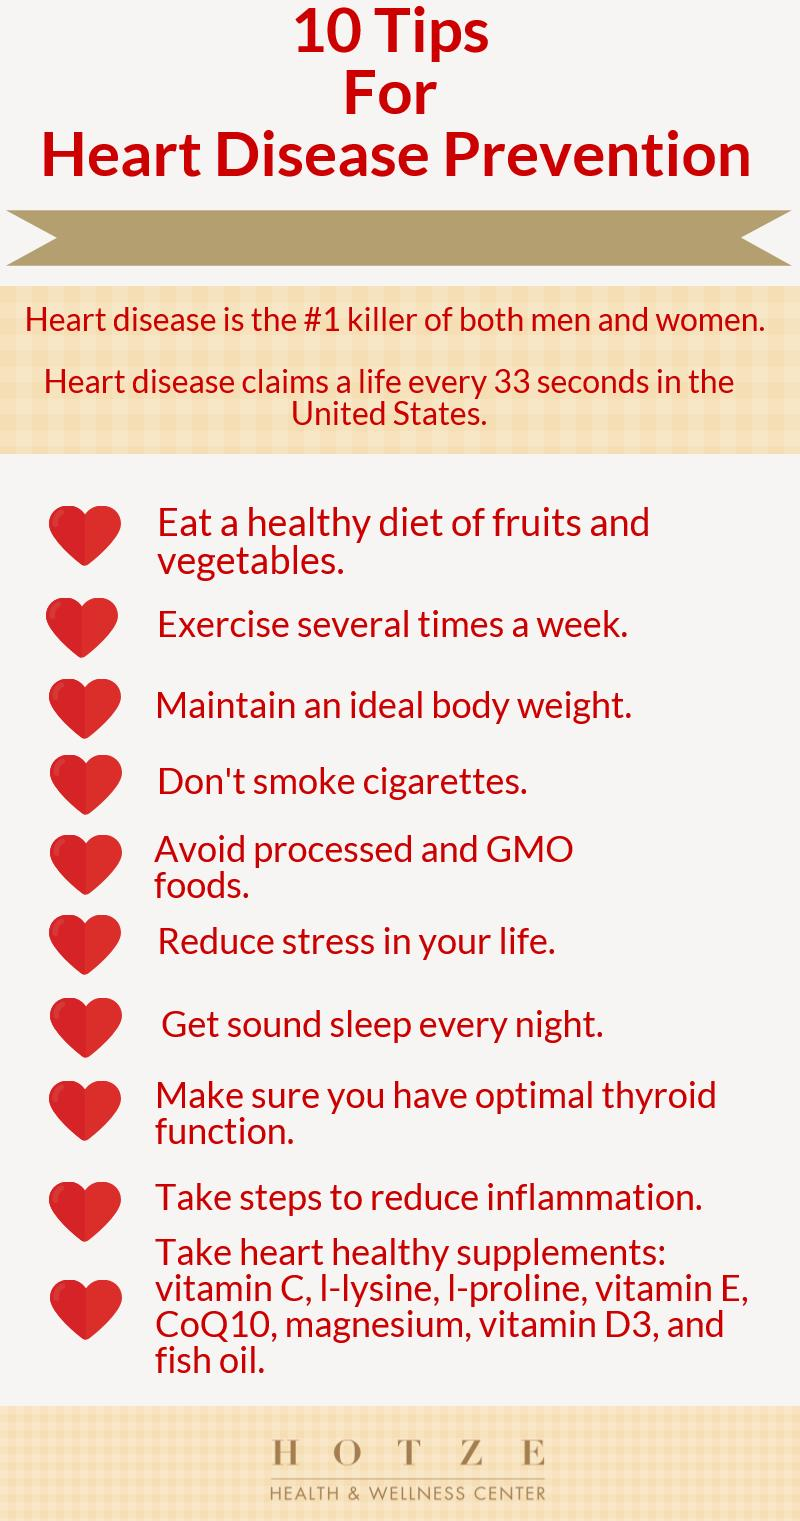 10 Tips for Heart Disease Prevention